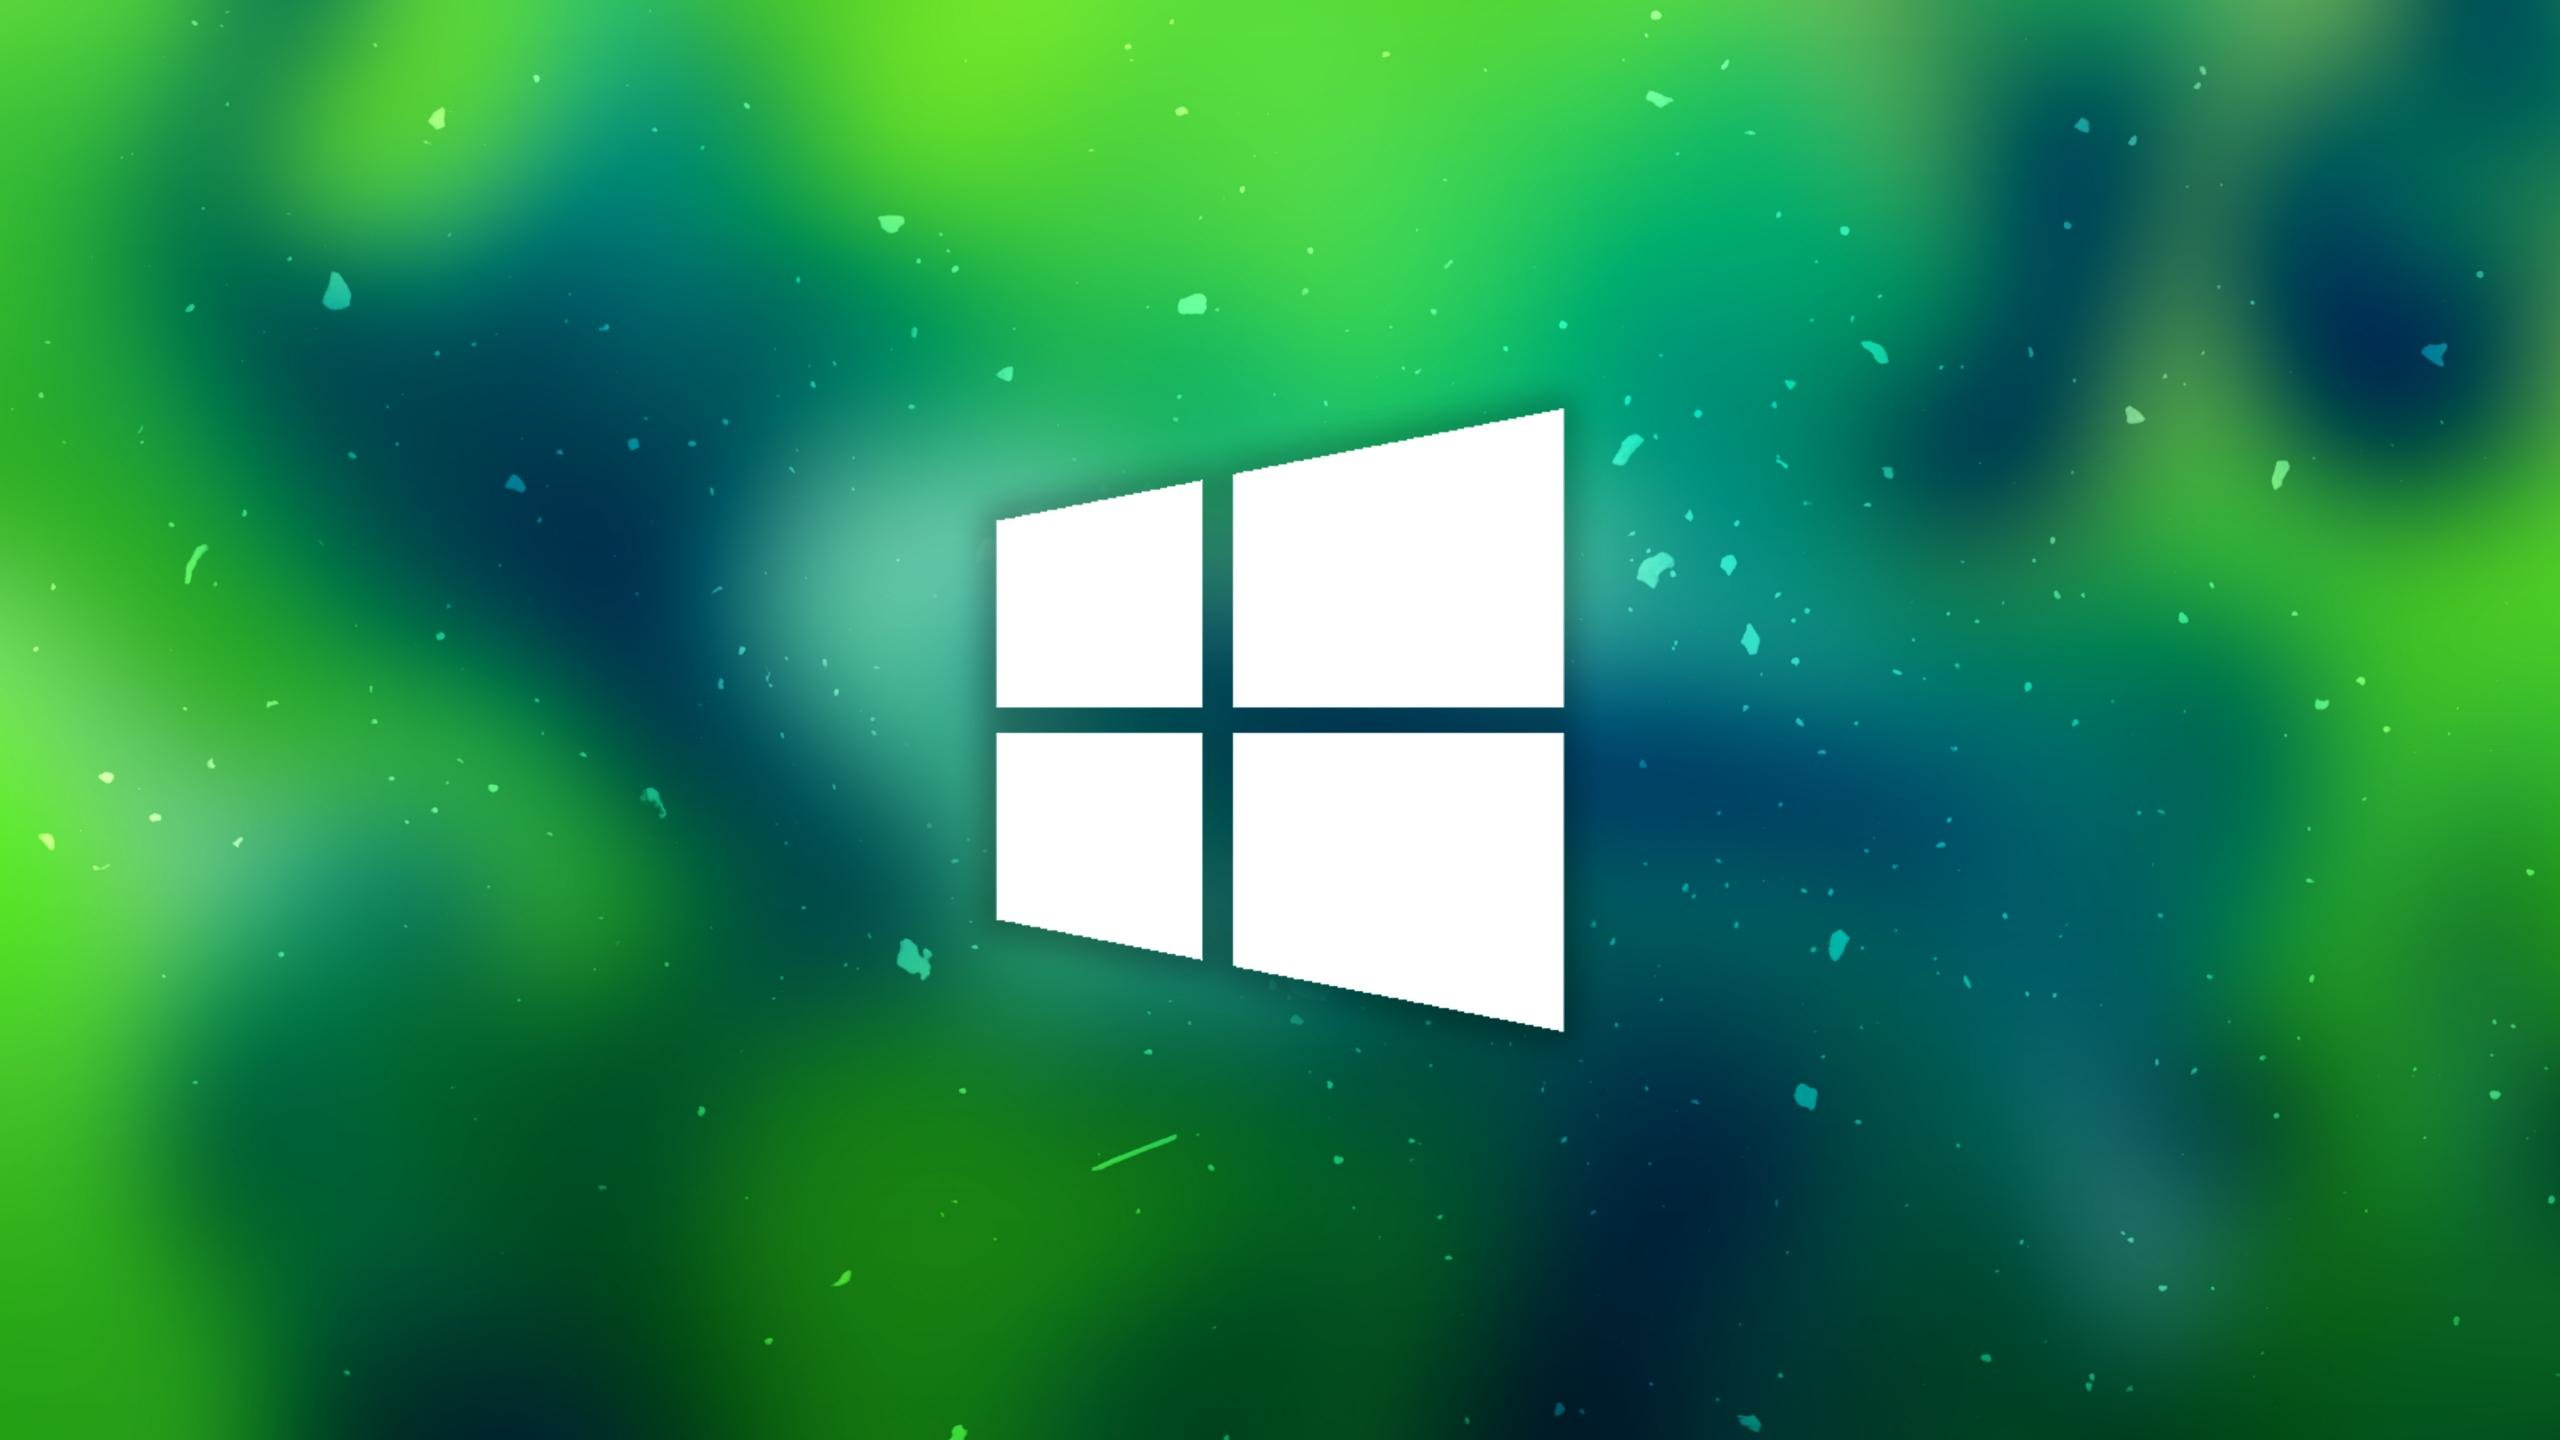 Awesome Windows 10 free background ID:130312 for hd 2560x1440 computer